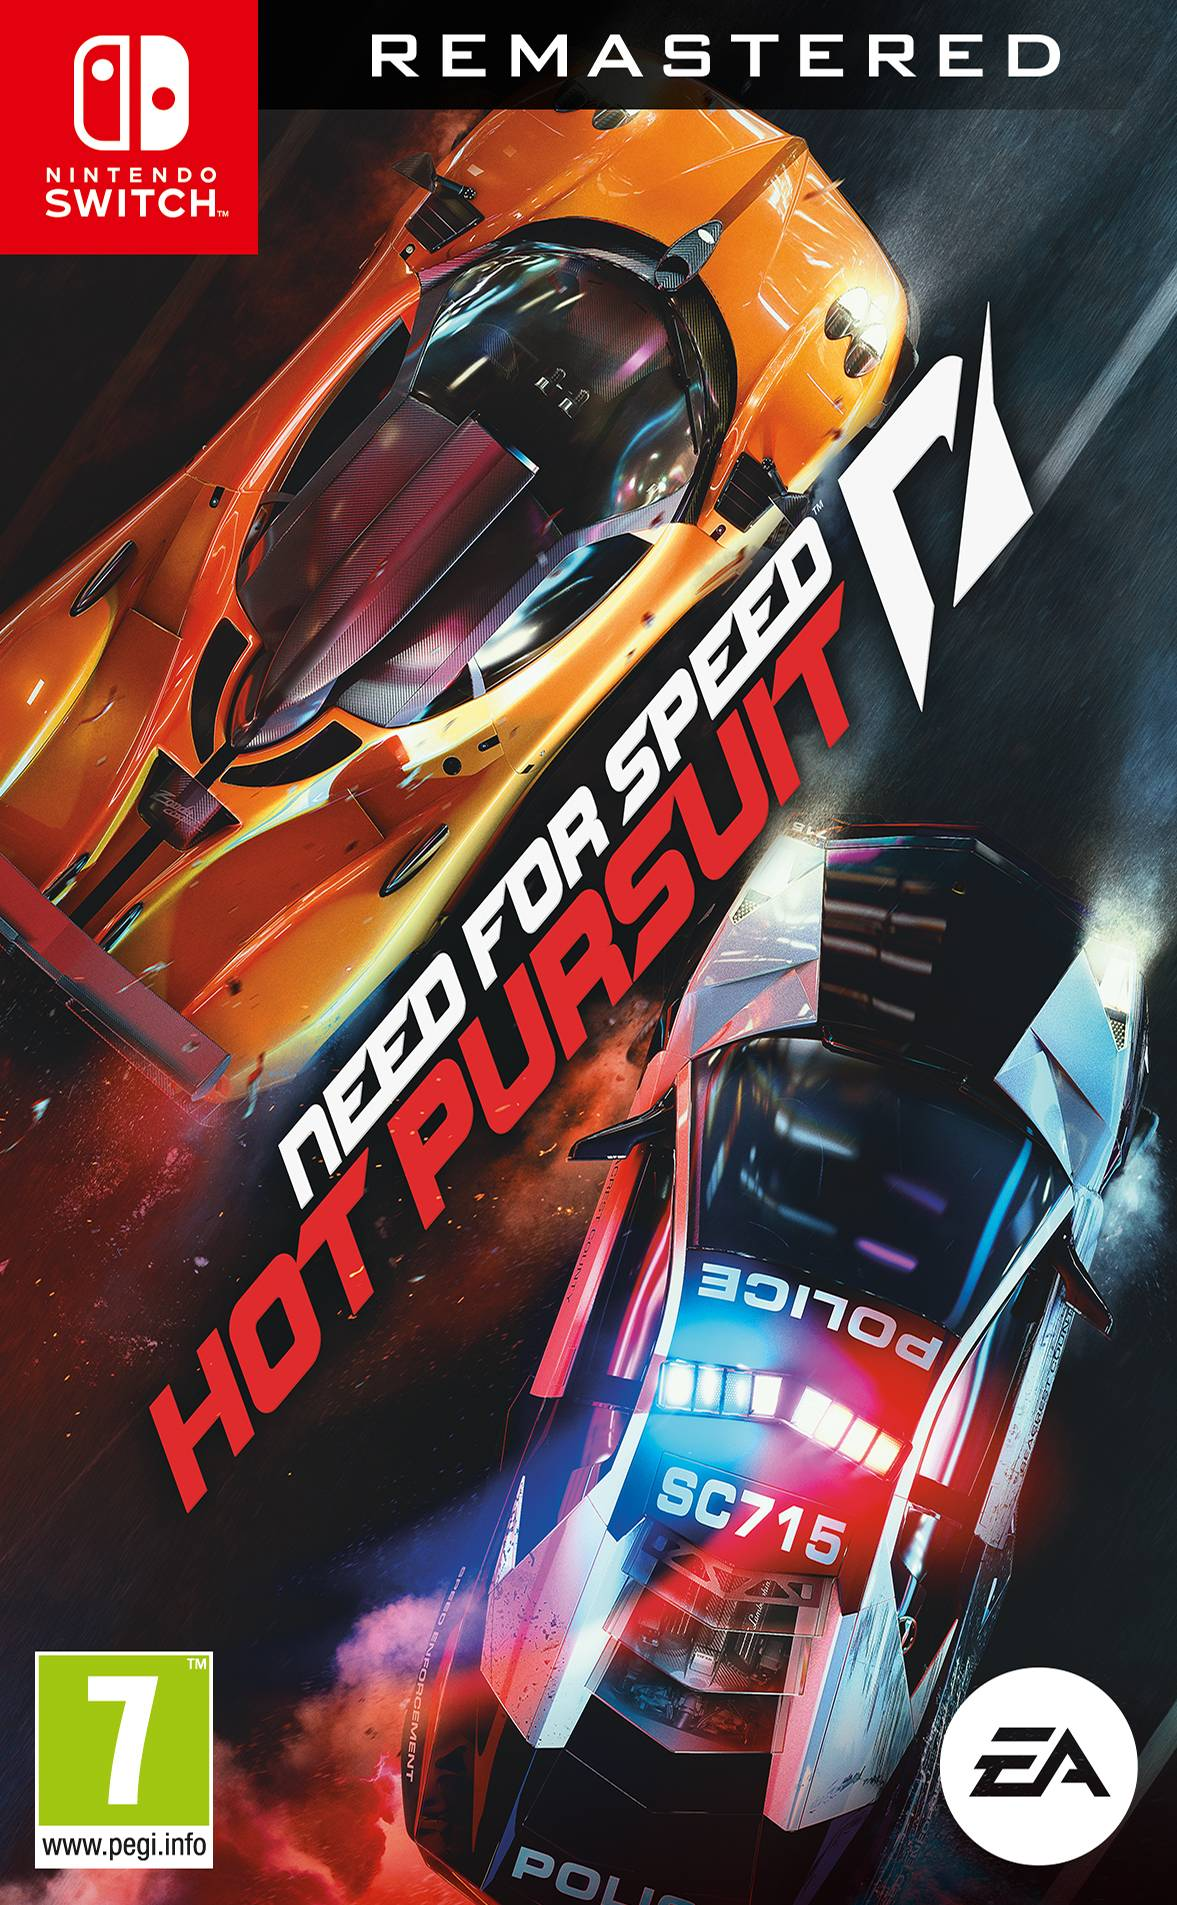 Nintendo Need For Speed Hot Pursuit - Remastered